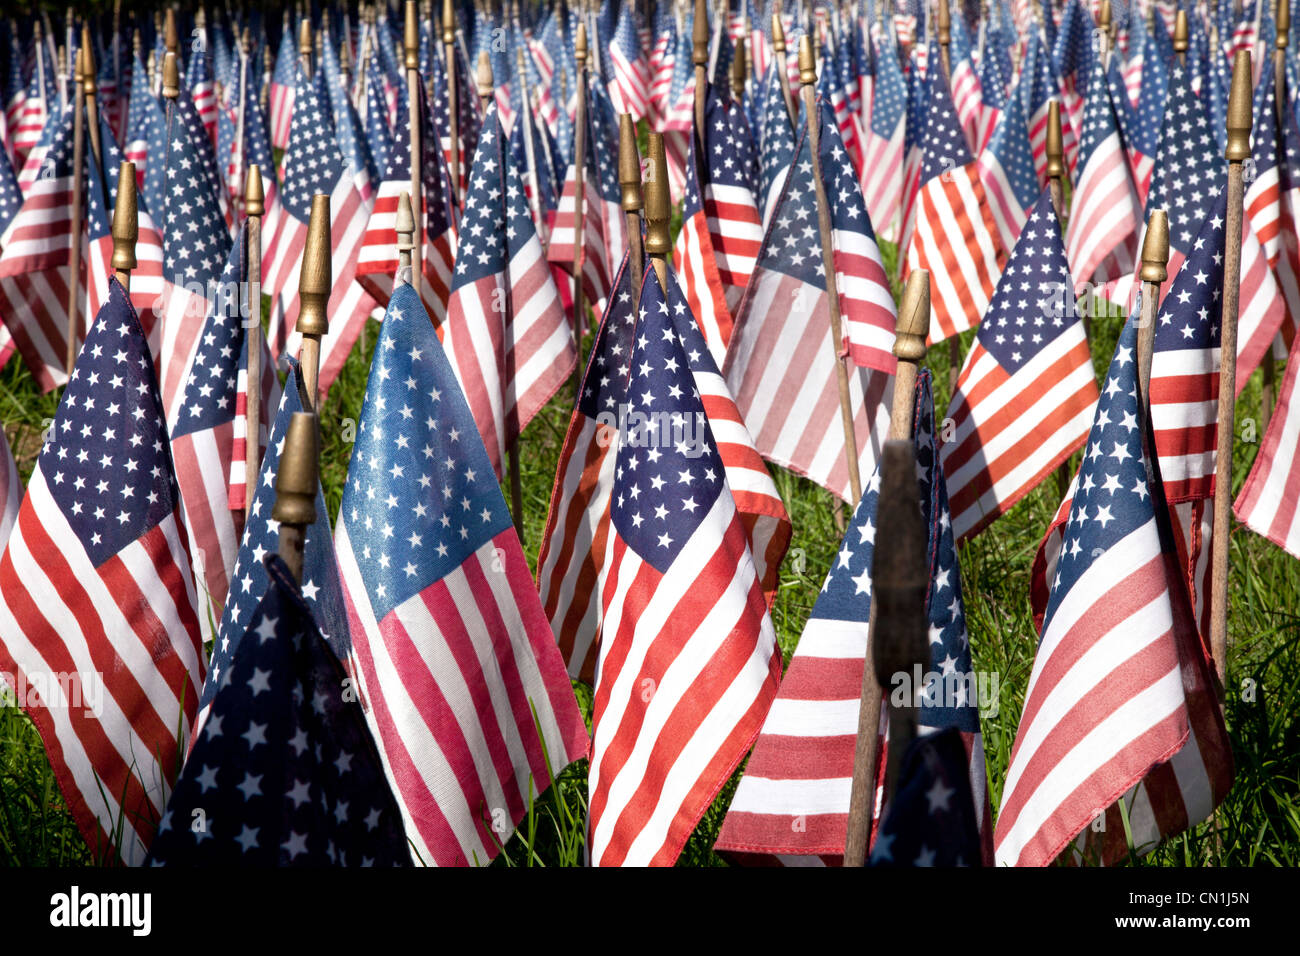 Field of American Flags, Kent, Connecticut, USA - Stock Image